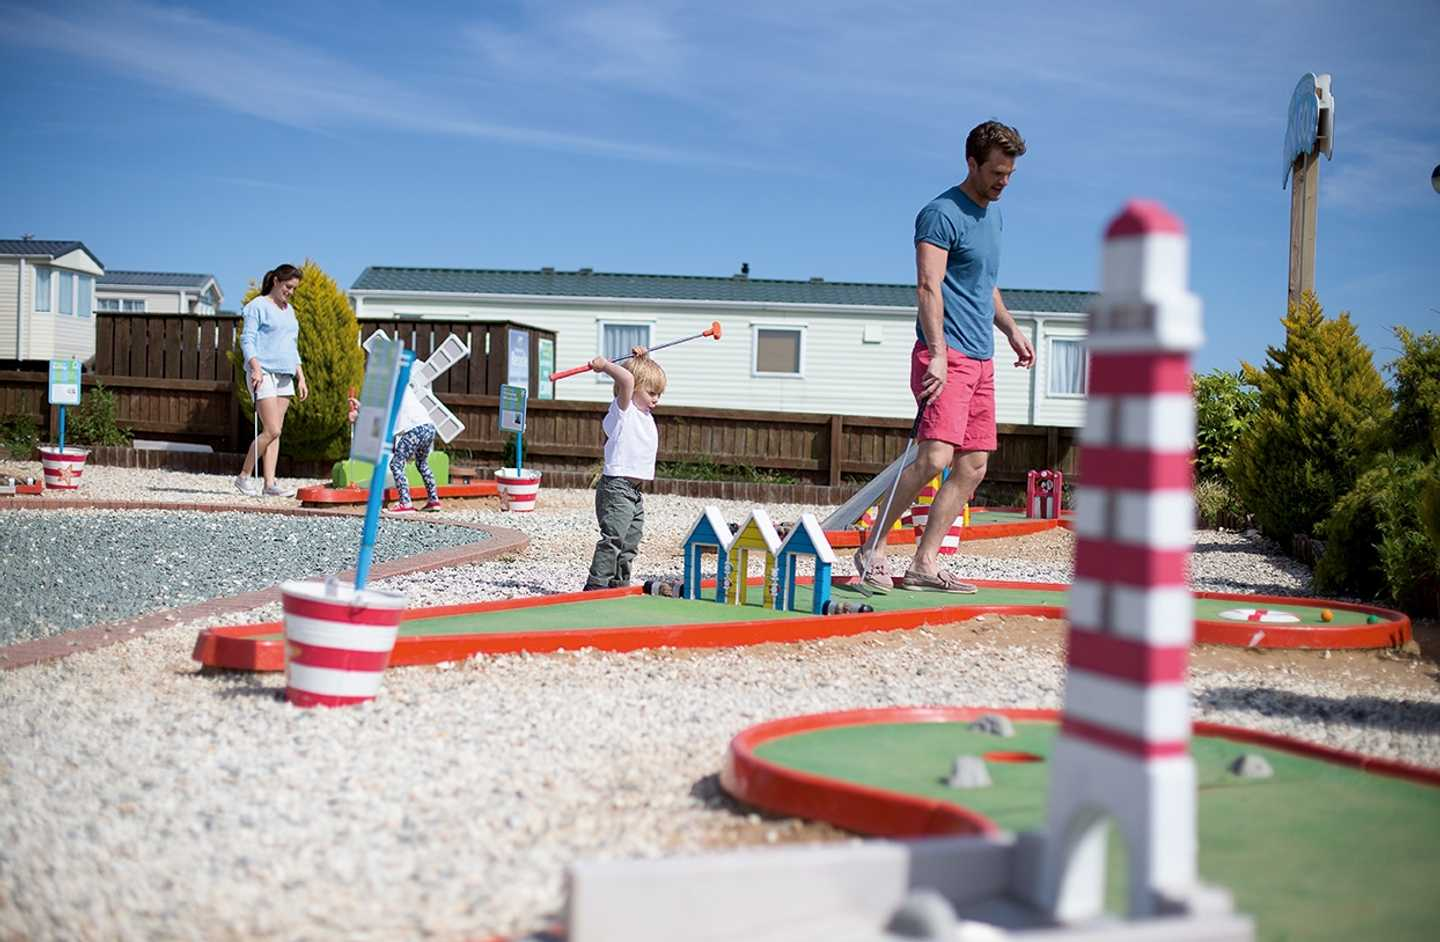 Family playing on the crazy golf course at Blue Dolphin Holiday Park